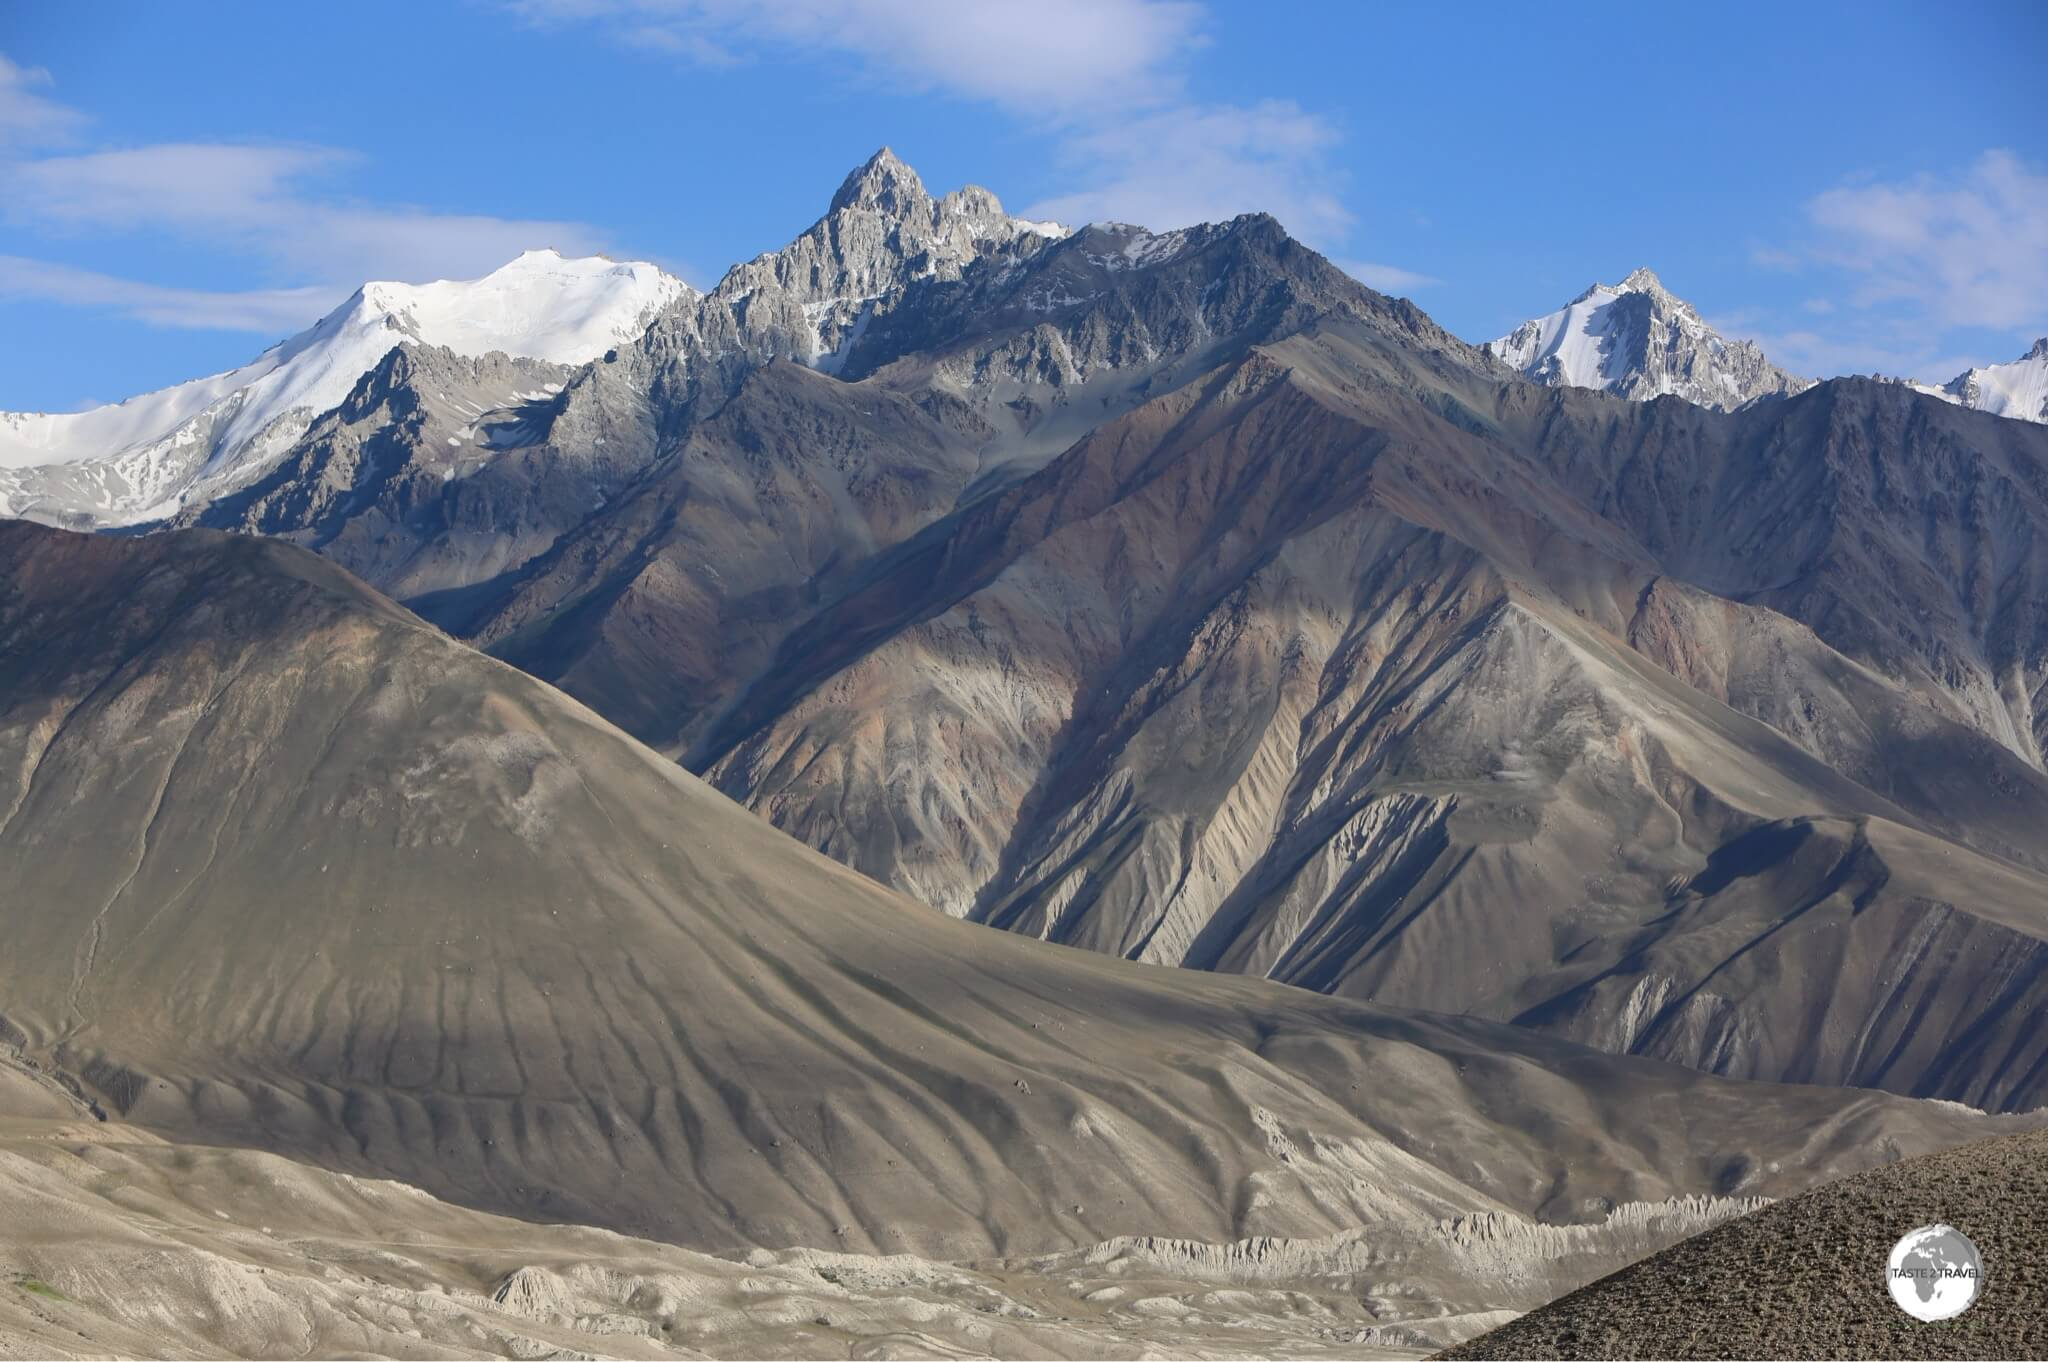 A view, from Tajikistan, of the soaring peaks of the Hindu Kush mountain range in neighbouring Afghanistan.